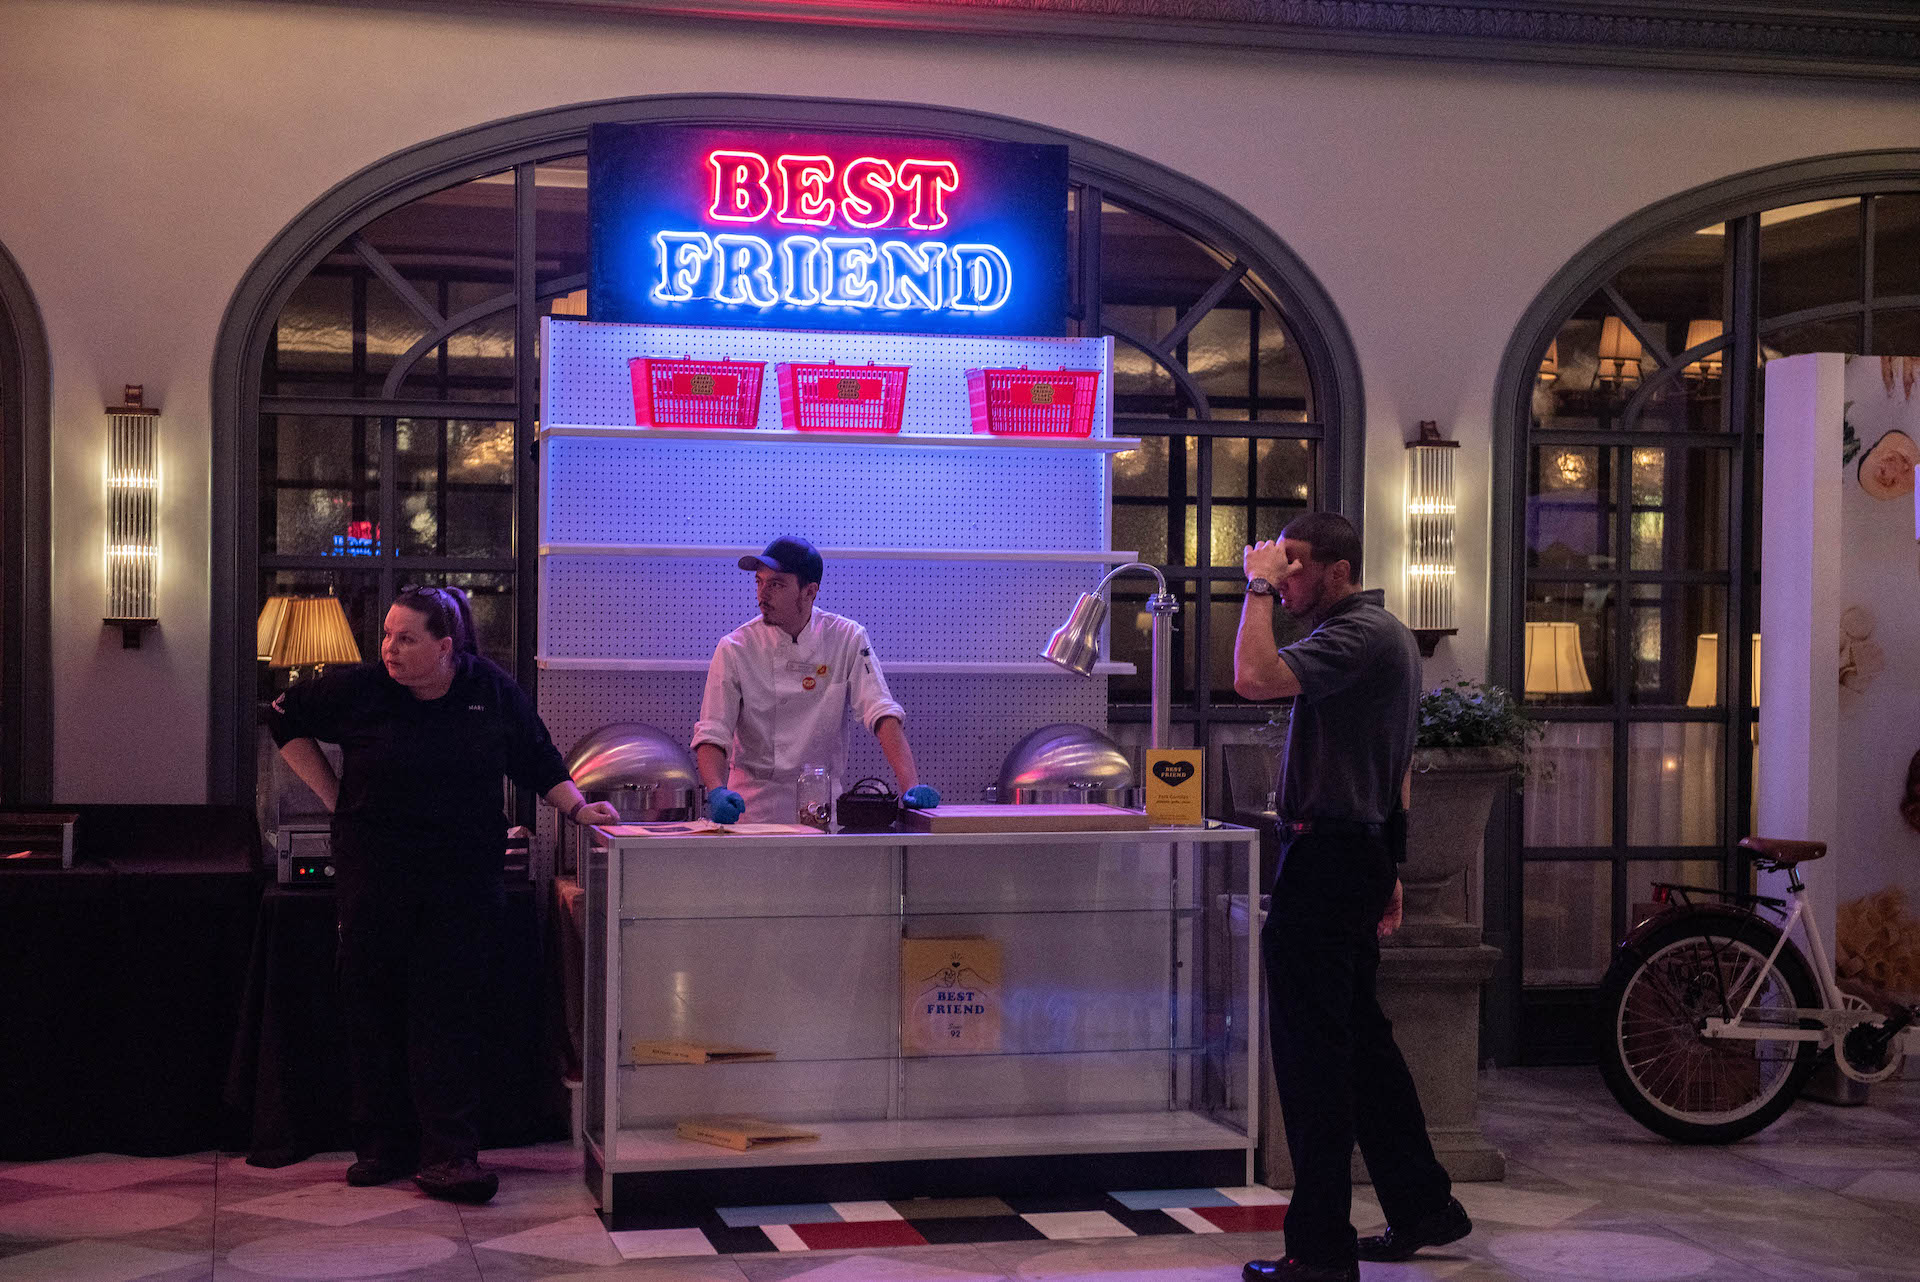 The Best Friend food stall in the lobby of the Park MGM.